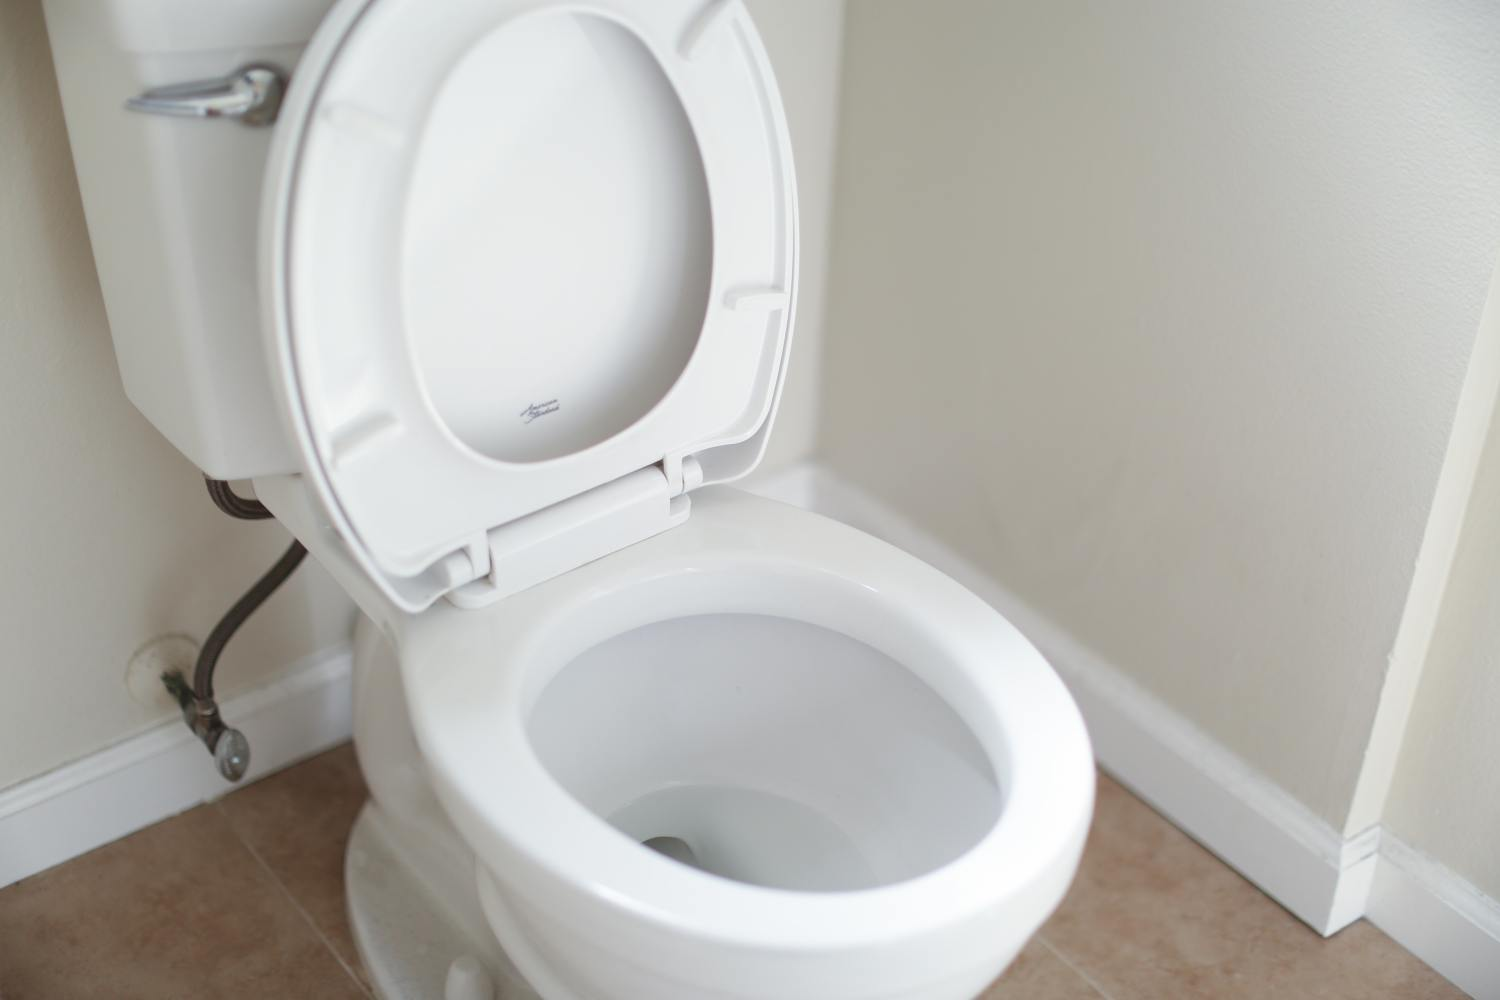 unhealthy stool pictures: what the different colors mean